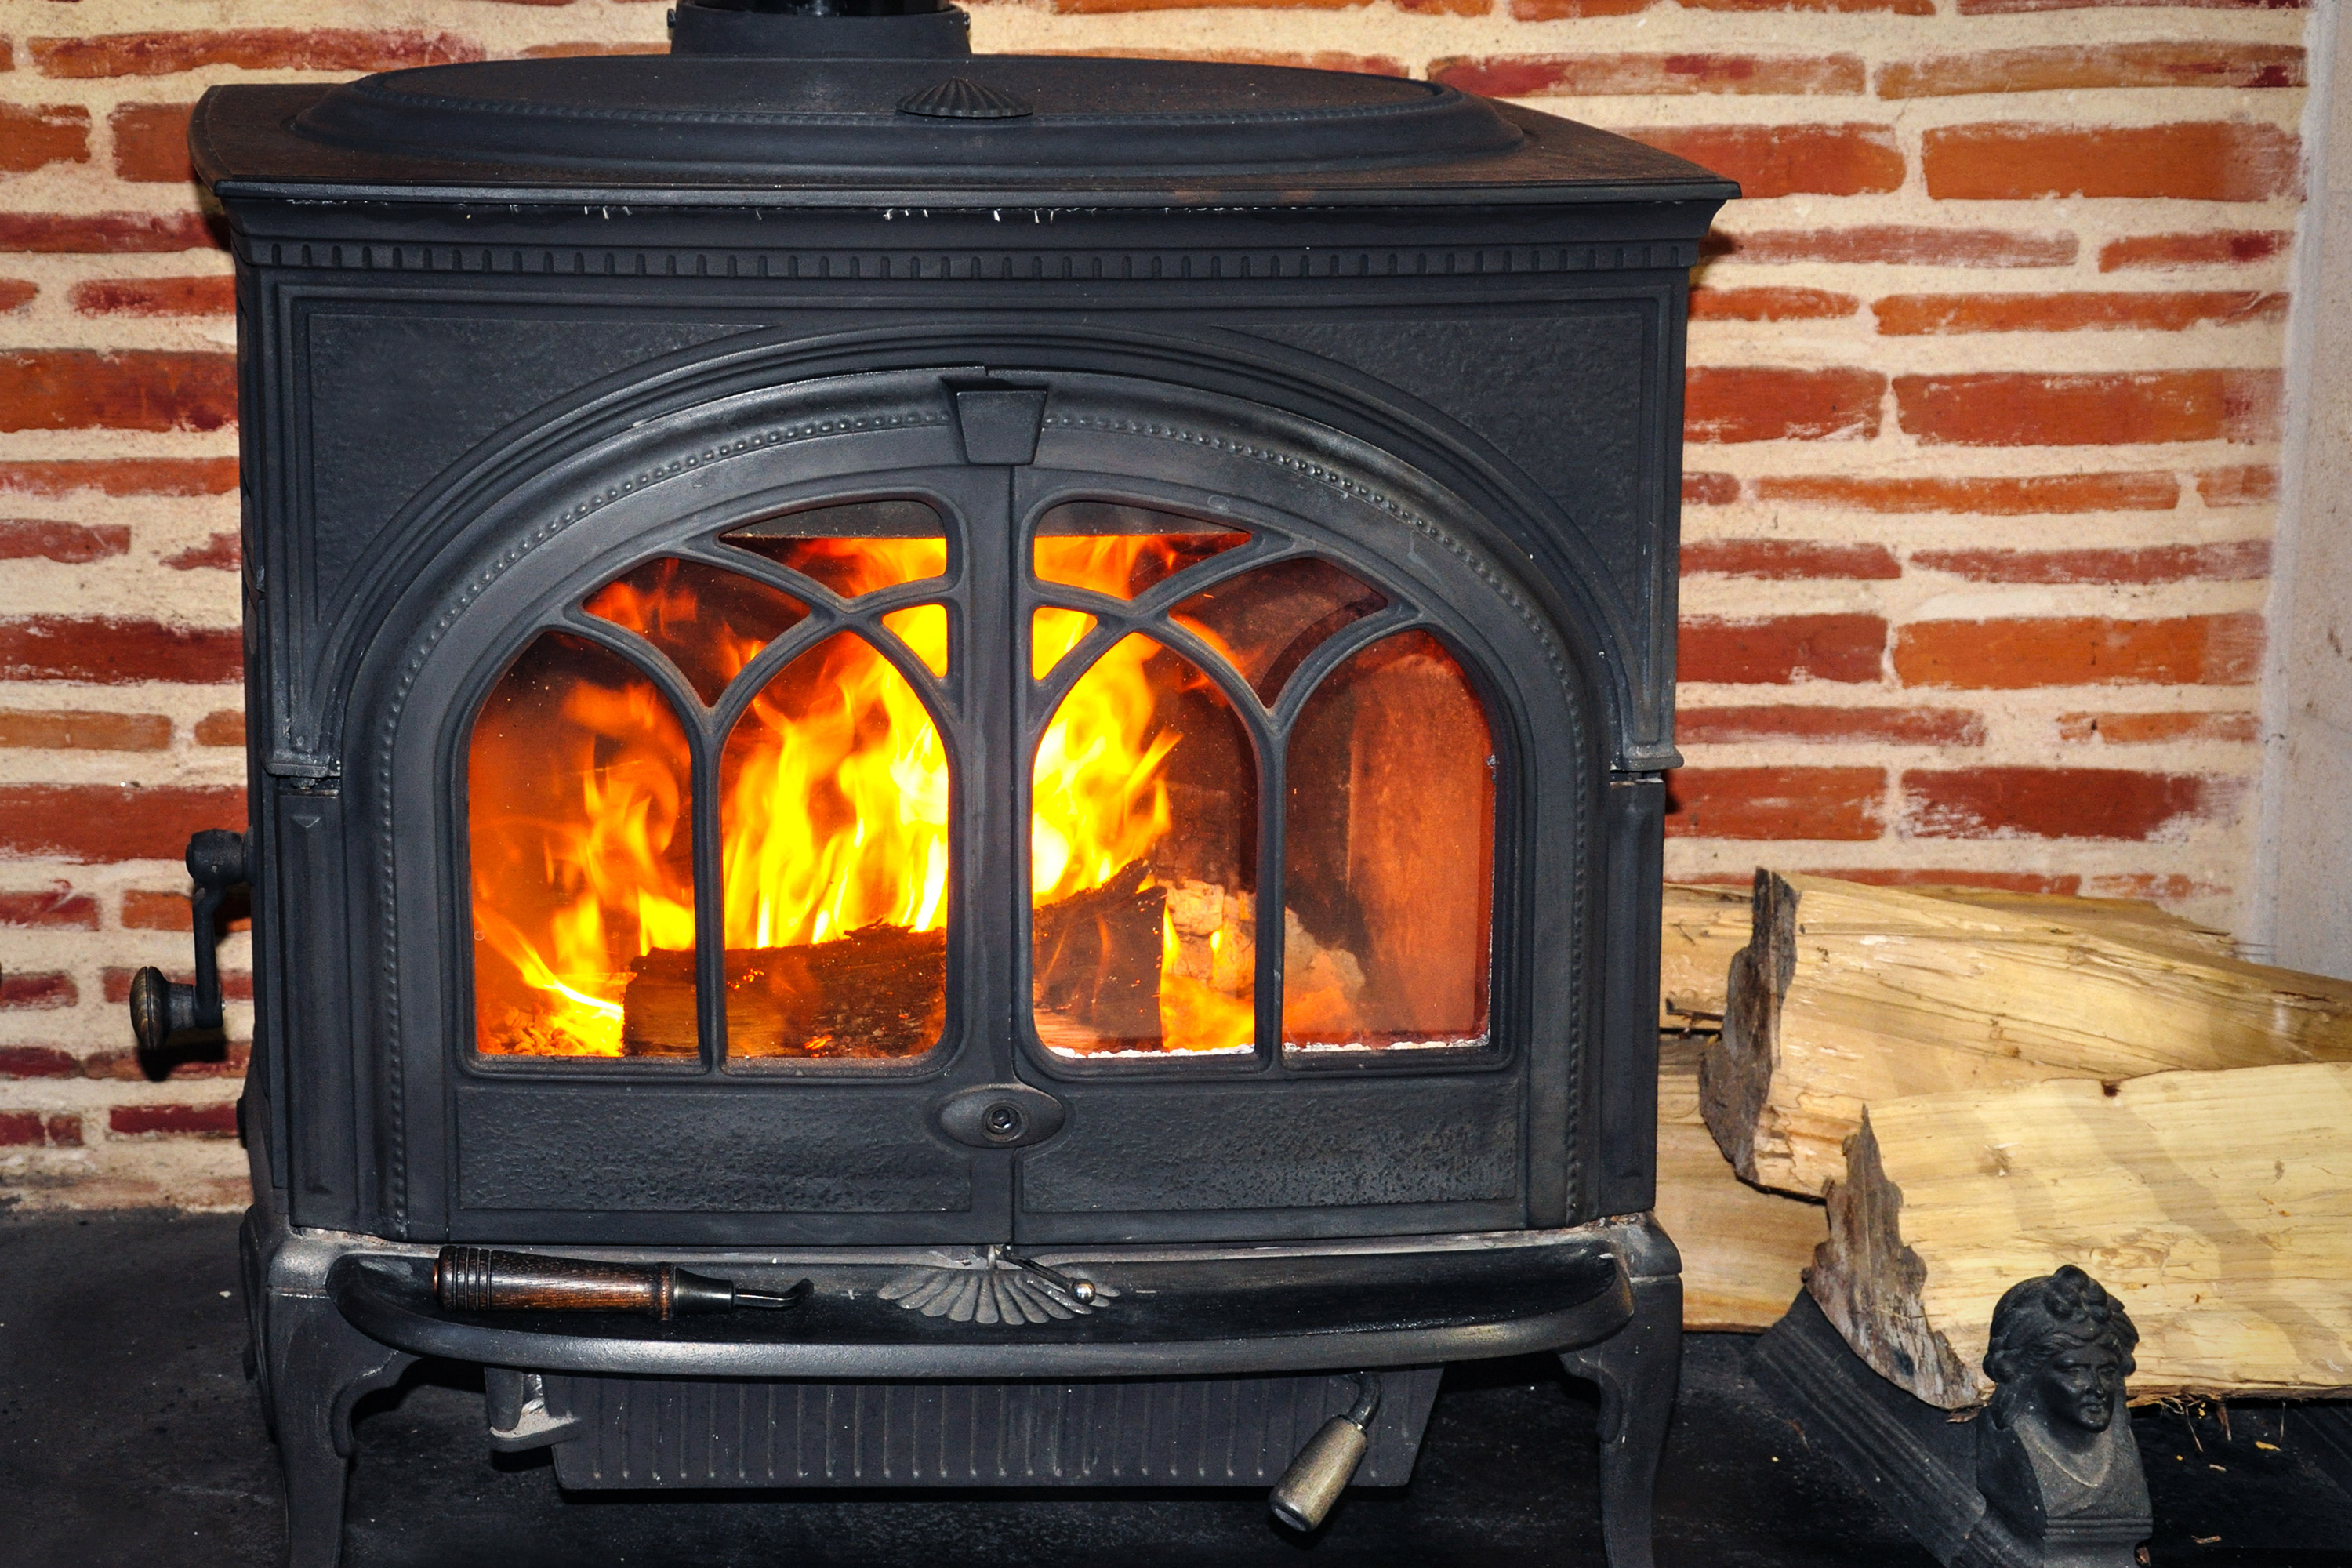 Wood burning stove. (Getty Images)